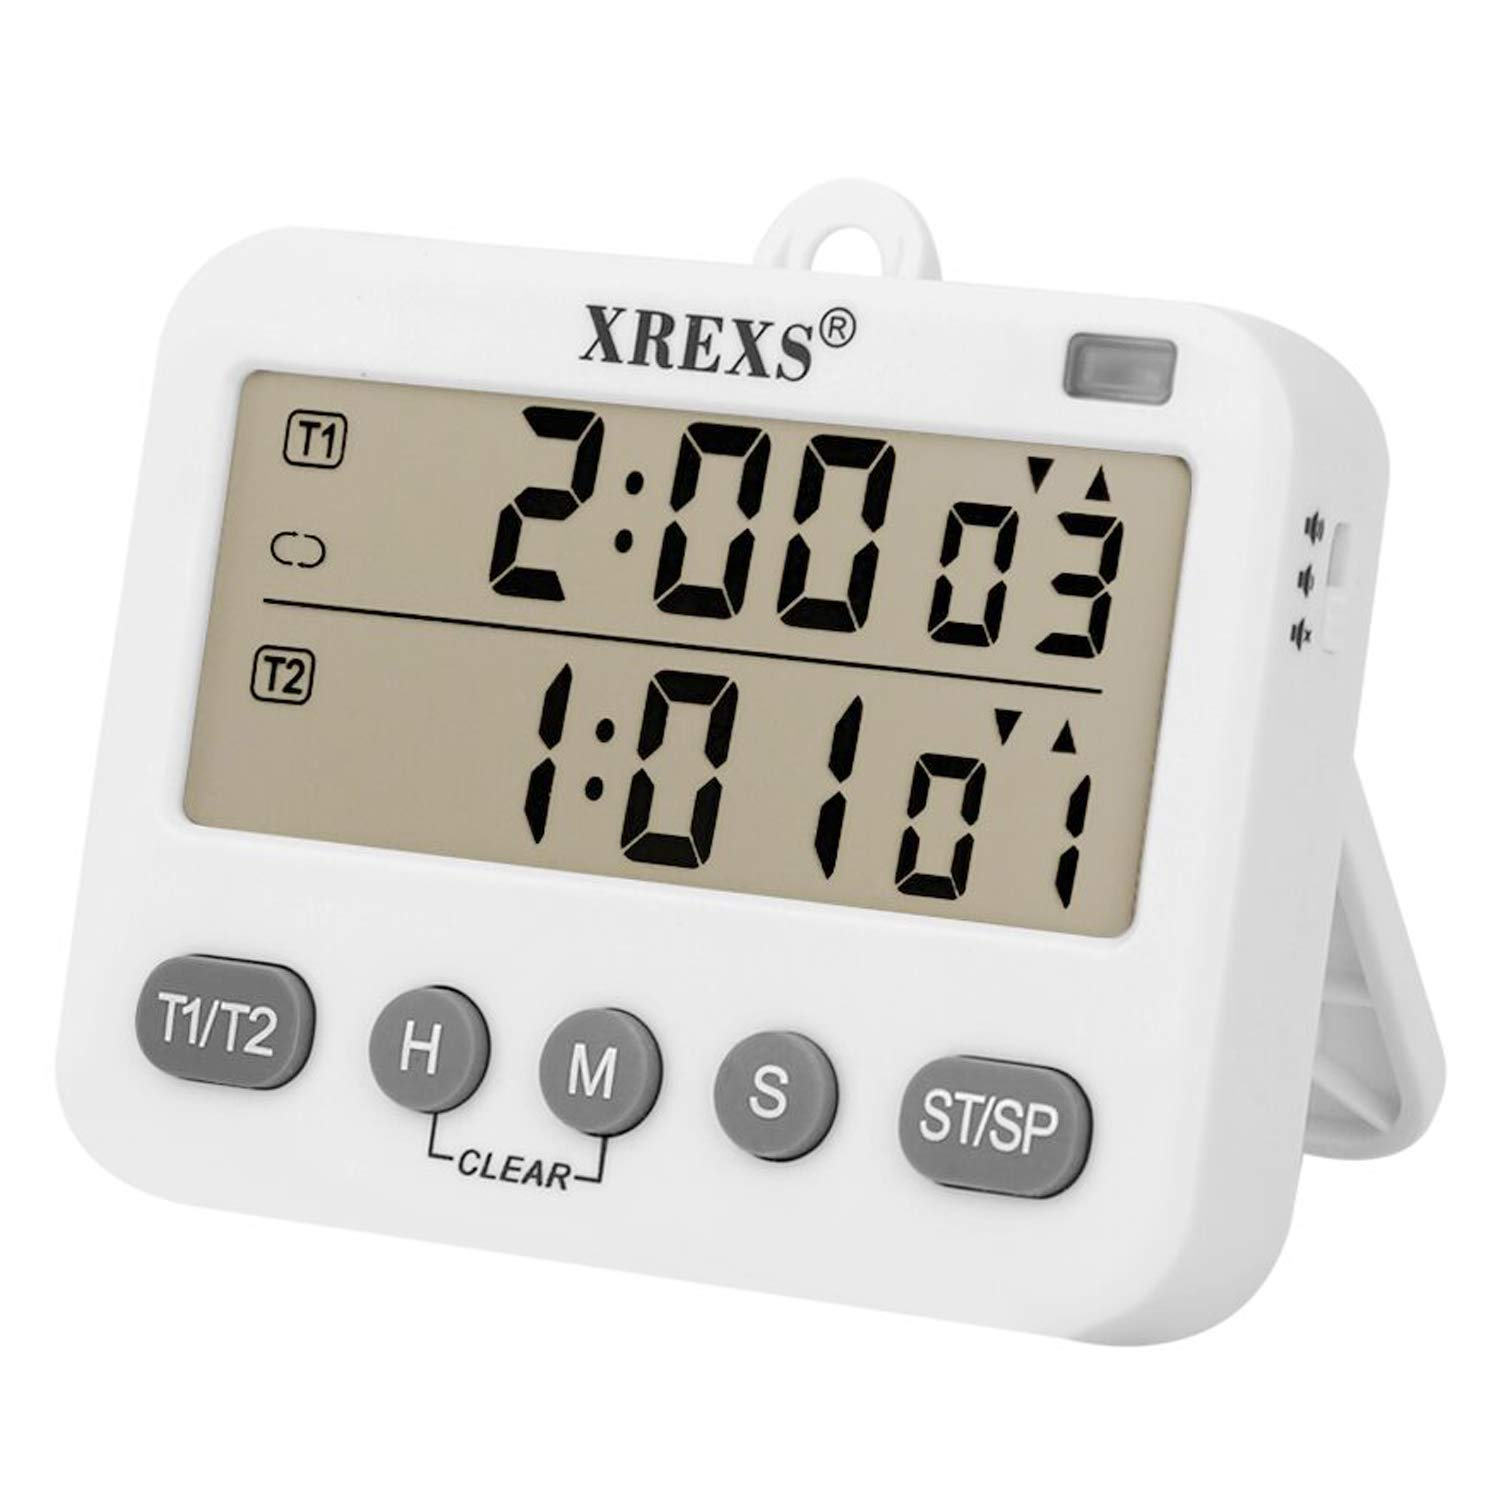 Cycle Countdown Kitchen Timer Digital Cooking Timer